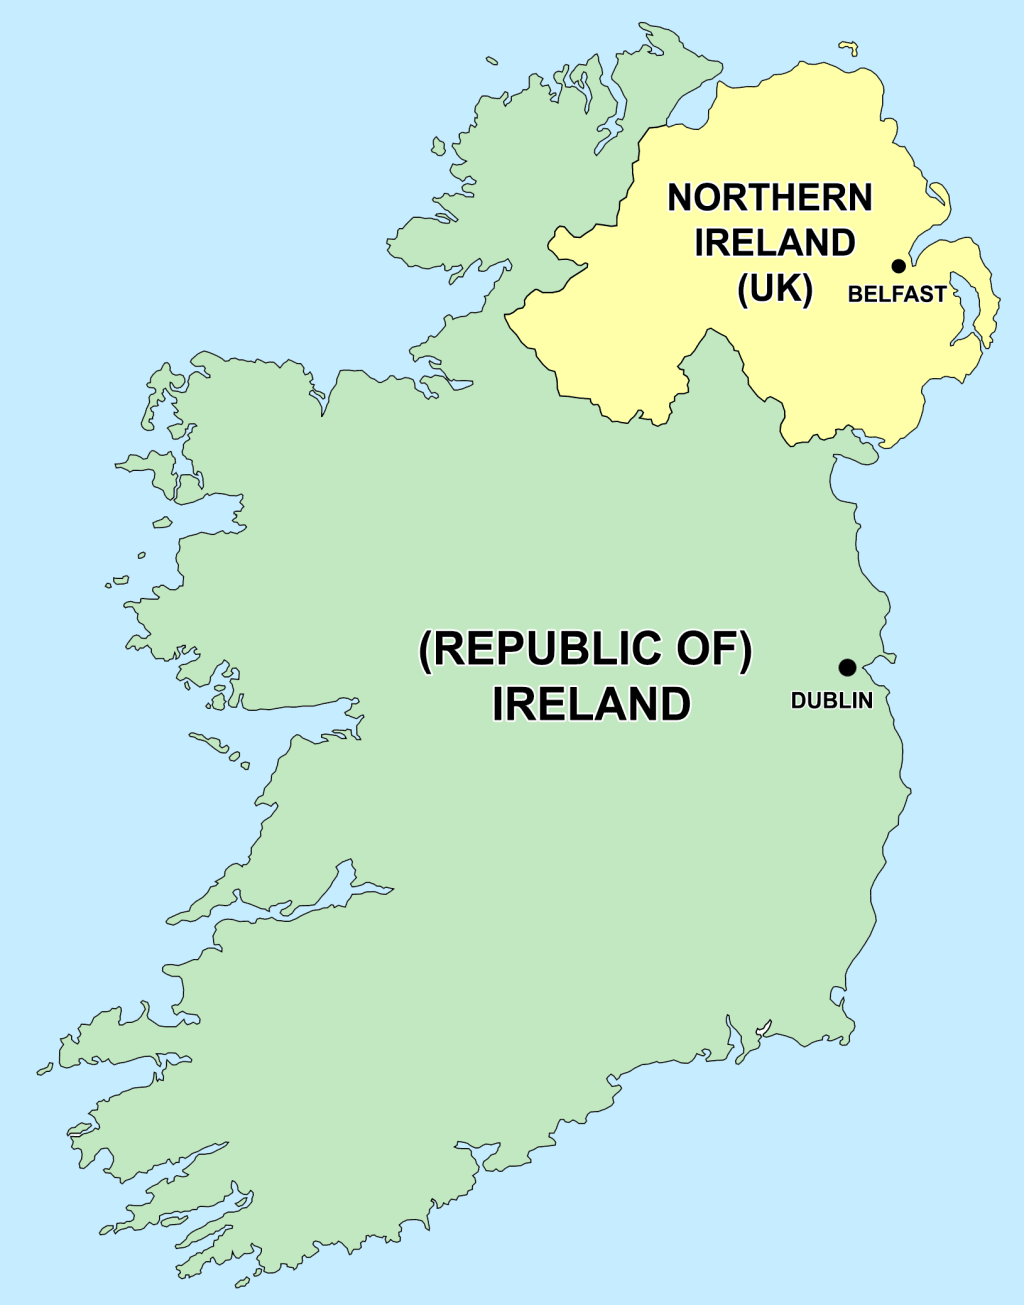 Northern Ireland Conflicts